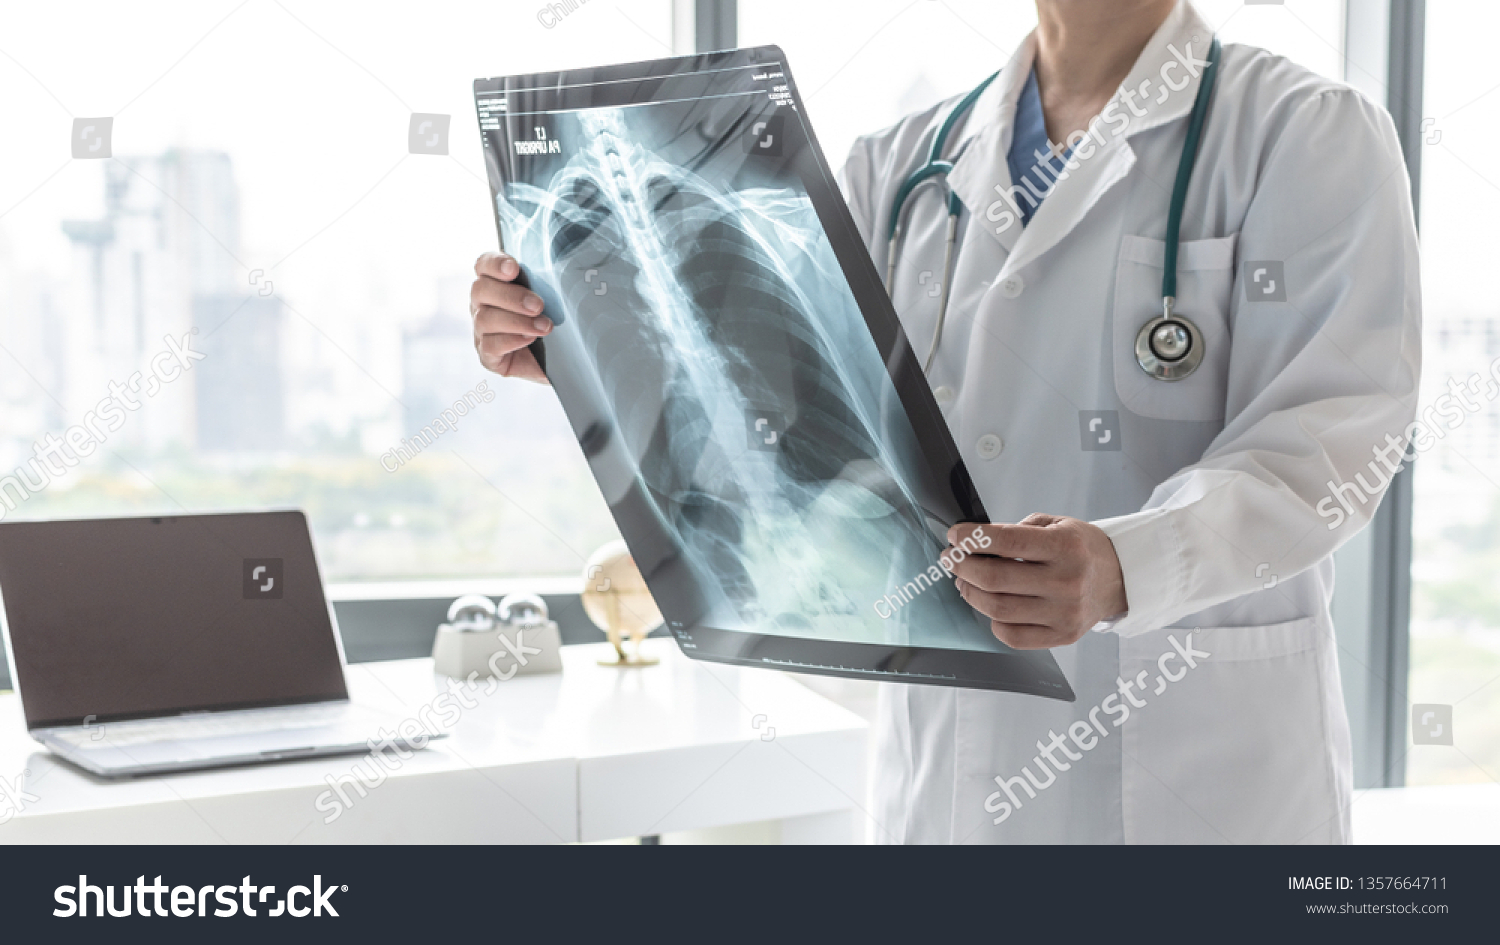 Doctor with radiological chest x-ray film for medical diagnosis on patient's health on COVID-19, asthma, lung disease and bone cancer illness, healthcare hospital service concept